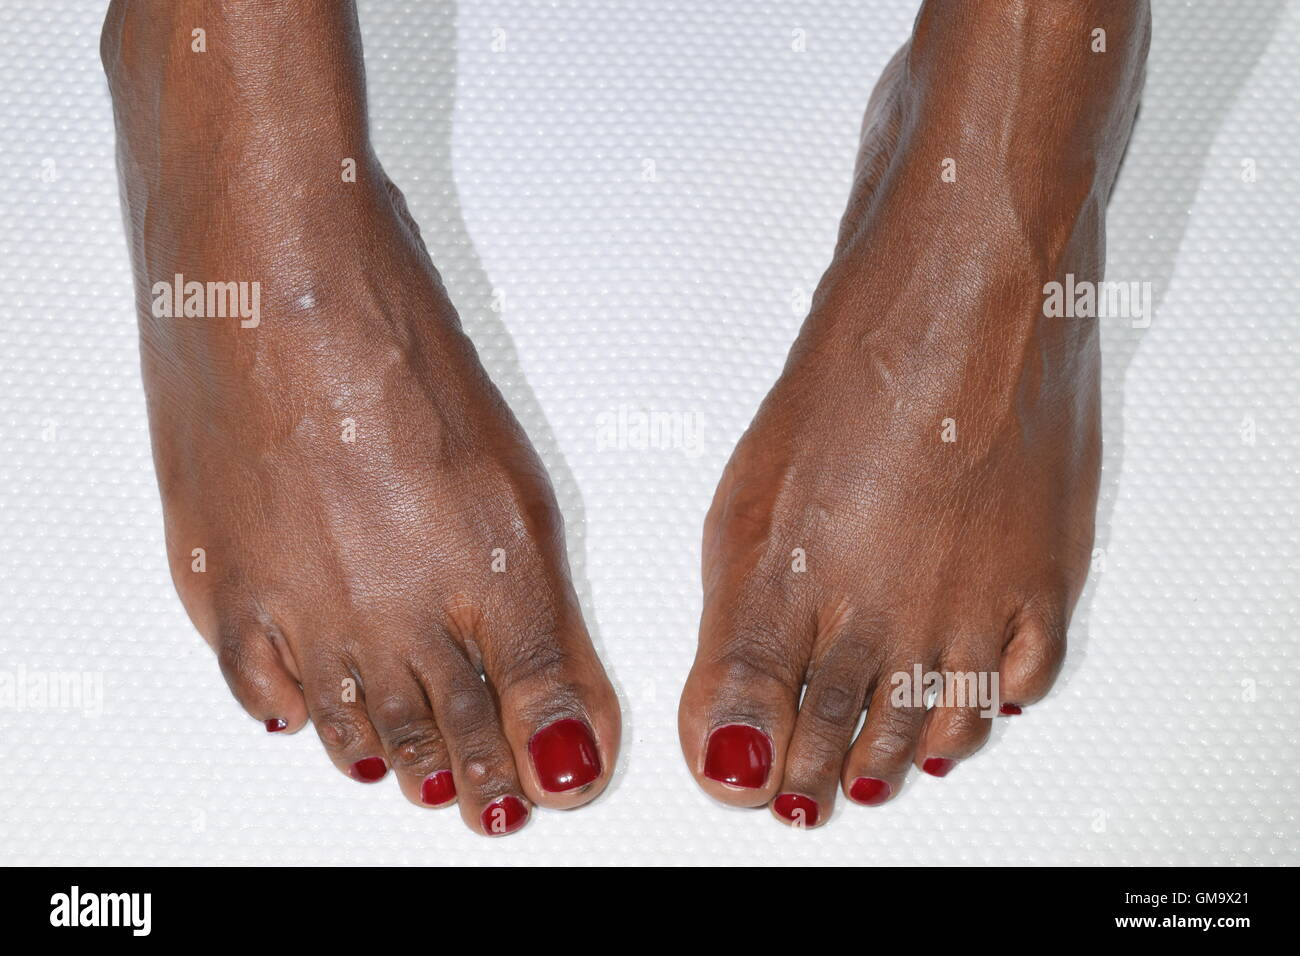 African Woman's Feet - Stock Image